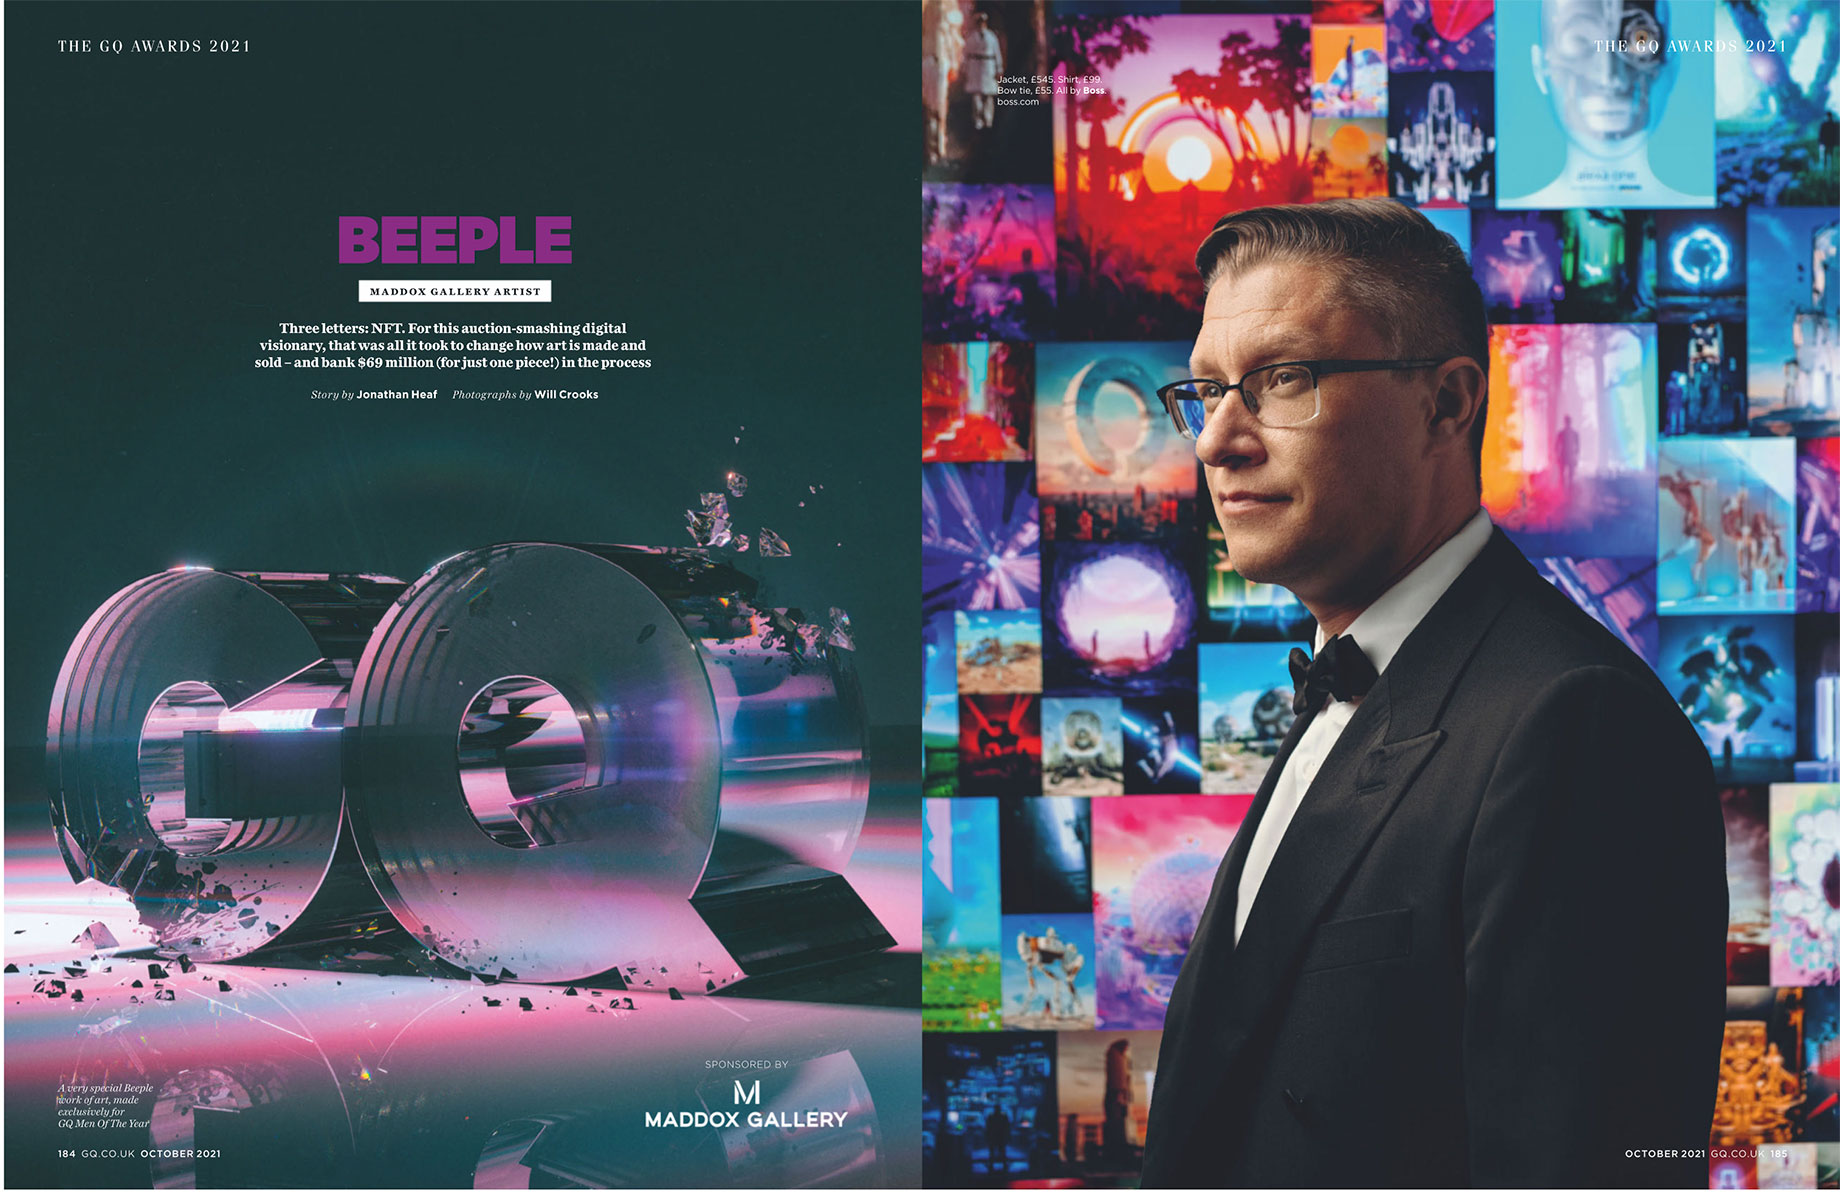 Tear sheet of British GQ Awards 2021 featuring Maddox Gallery Artist Beeple shot by Will Crooks